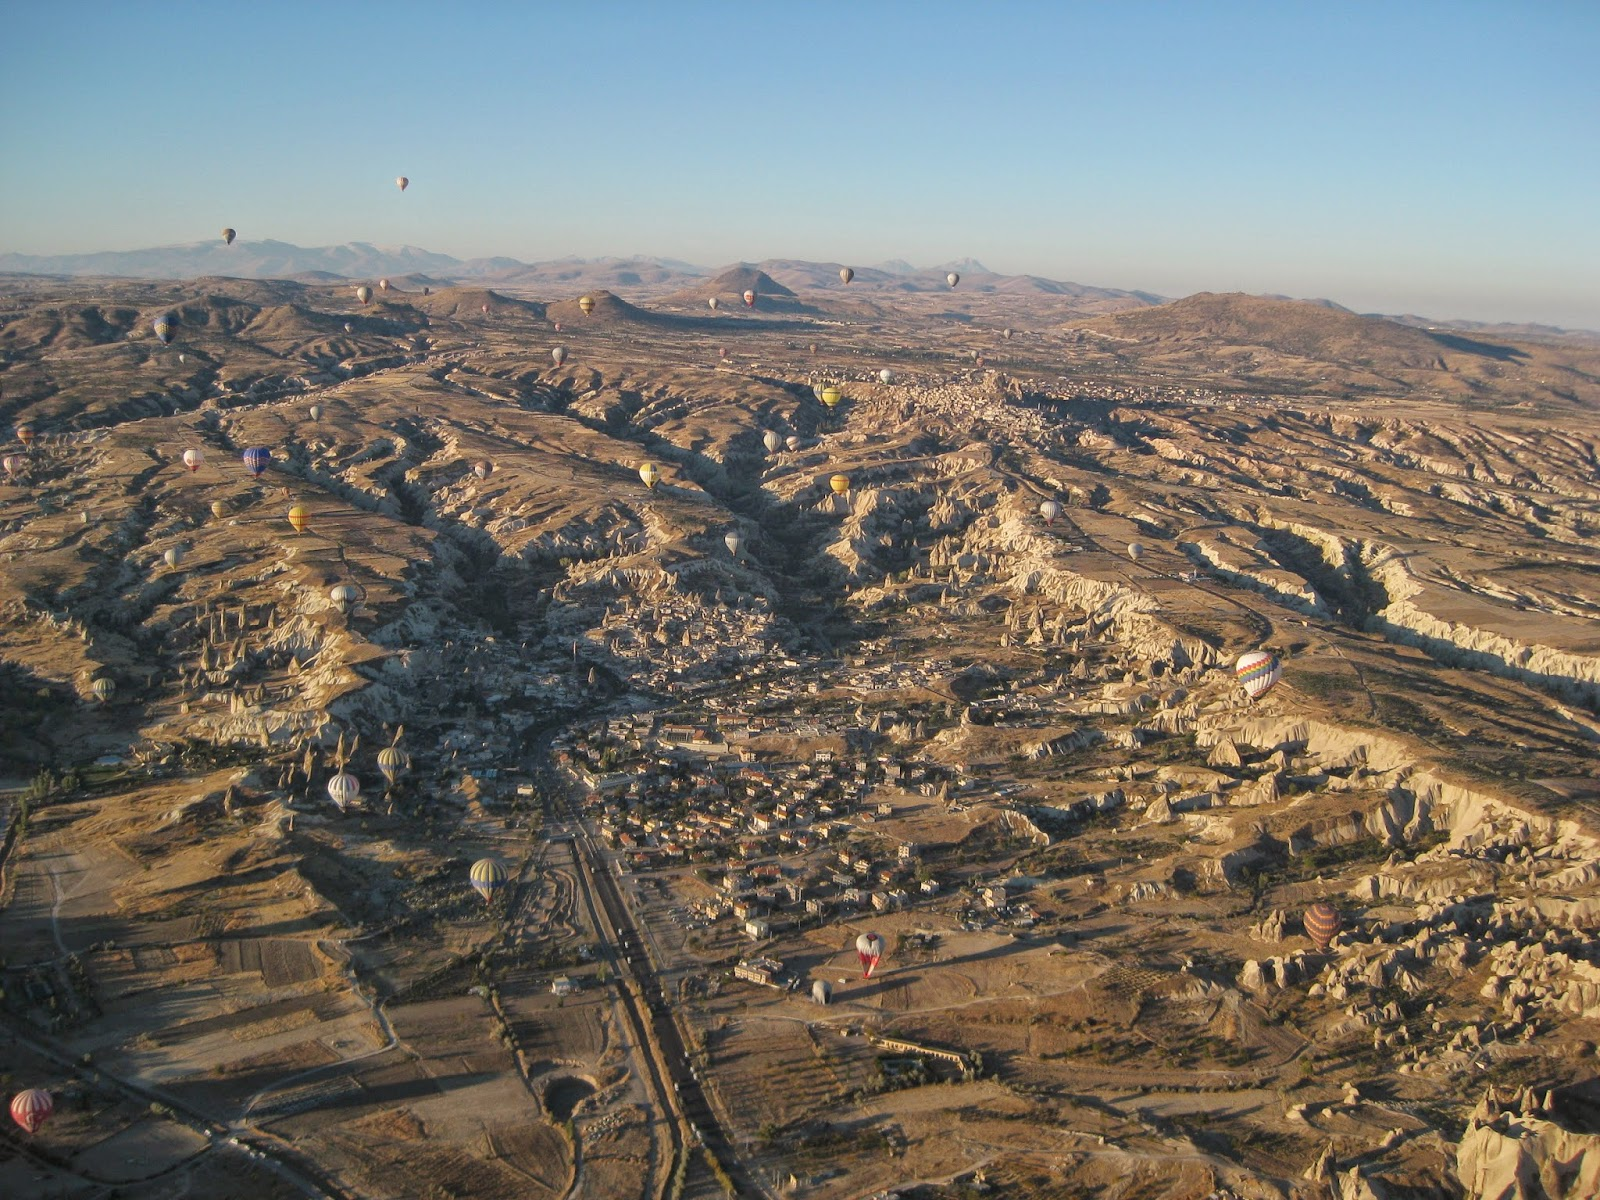 Cappadocia - The terrain looks so interesting from this height